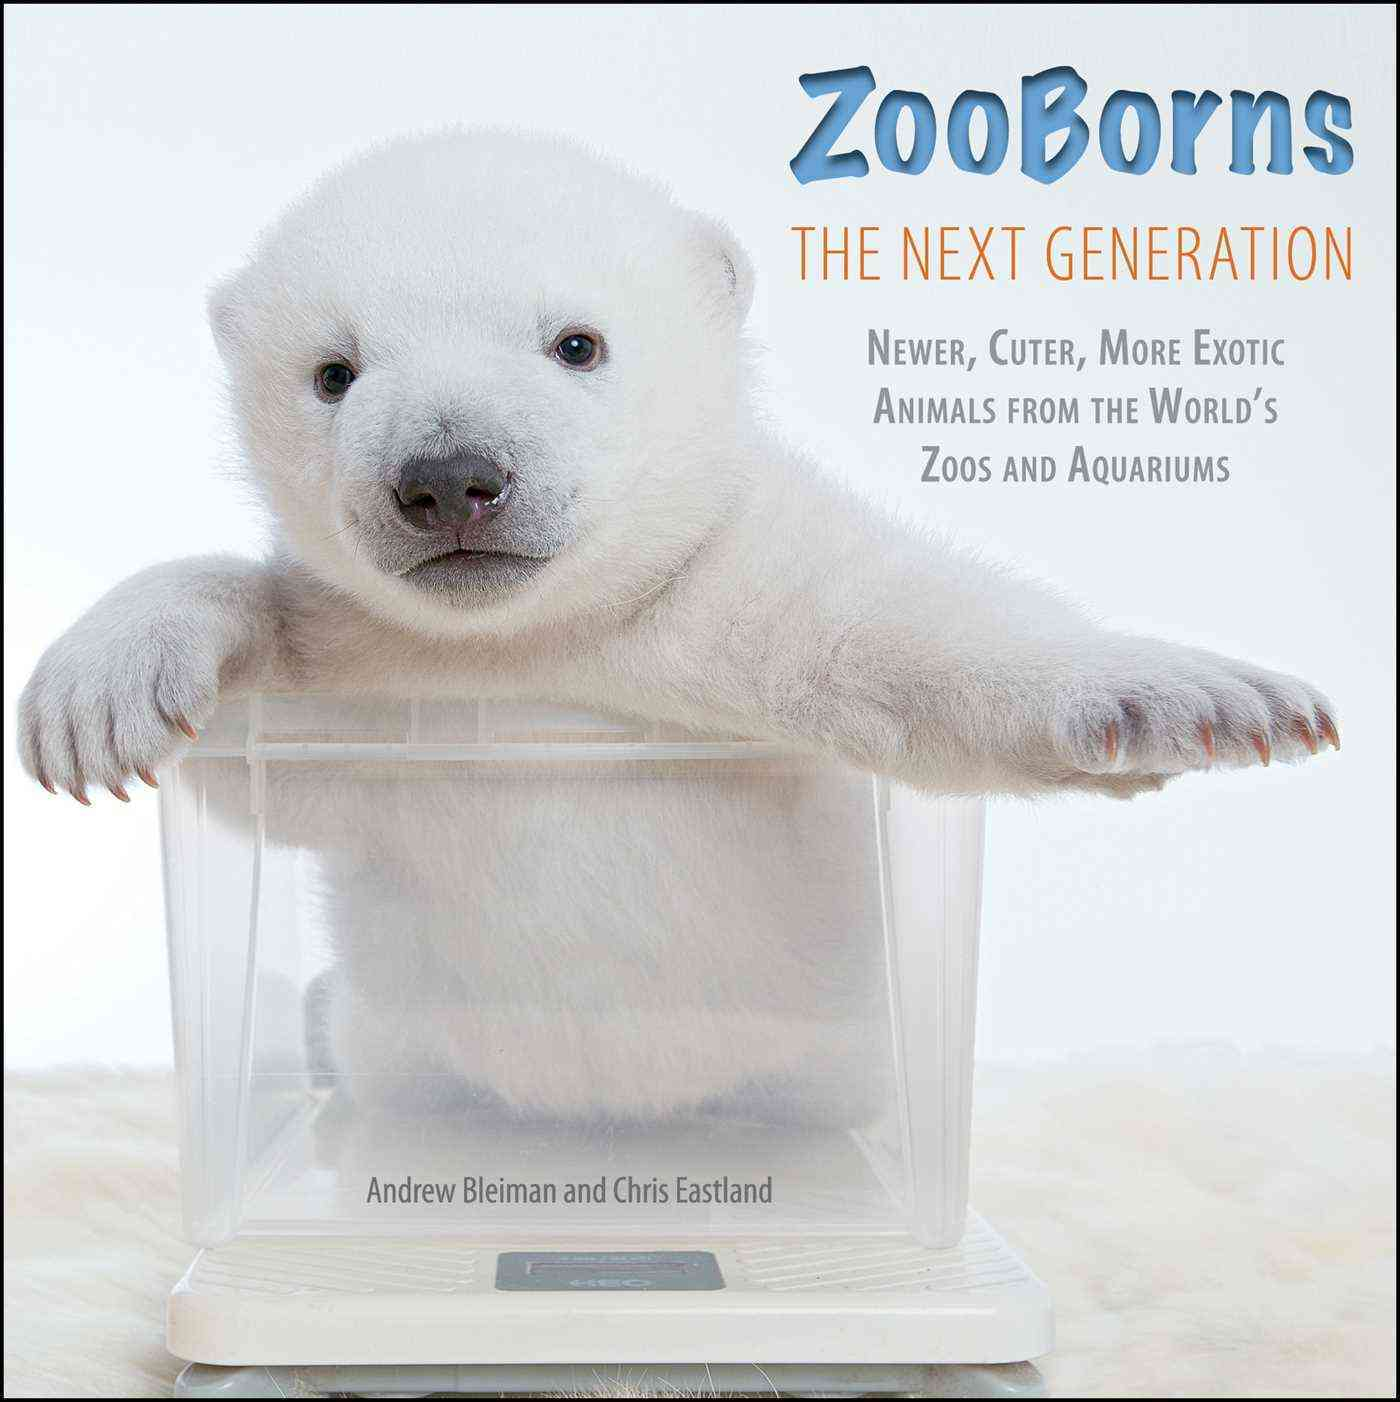 Zooborns the Next Generation: Newer, Cuter, More Exotic Animals from the World's Zoos and Aquariums (Hardcover)